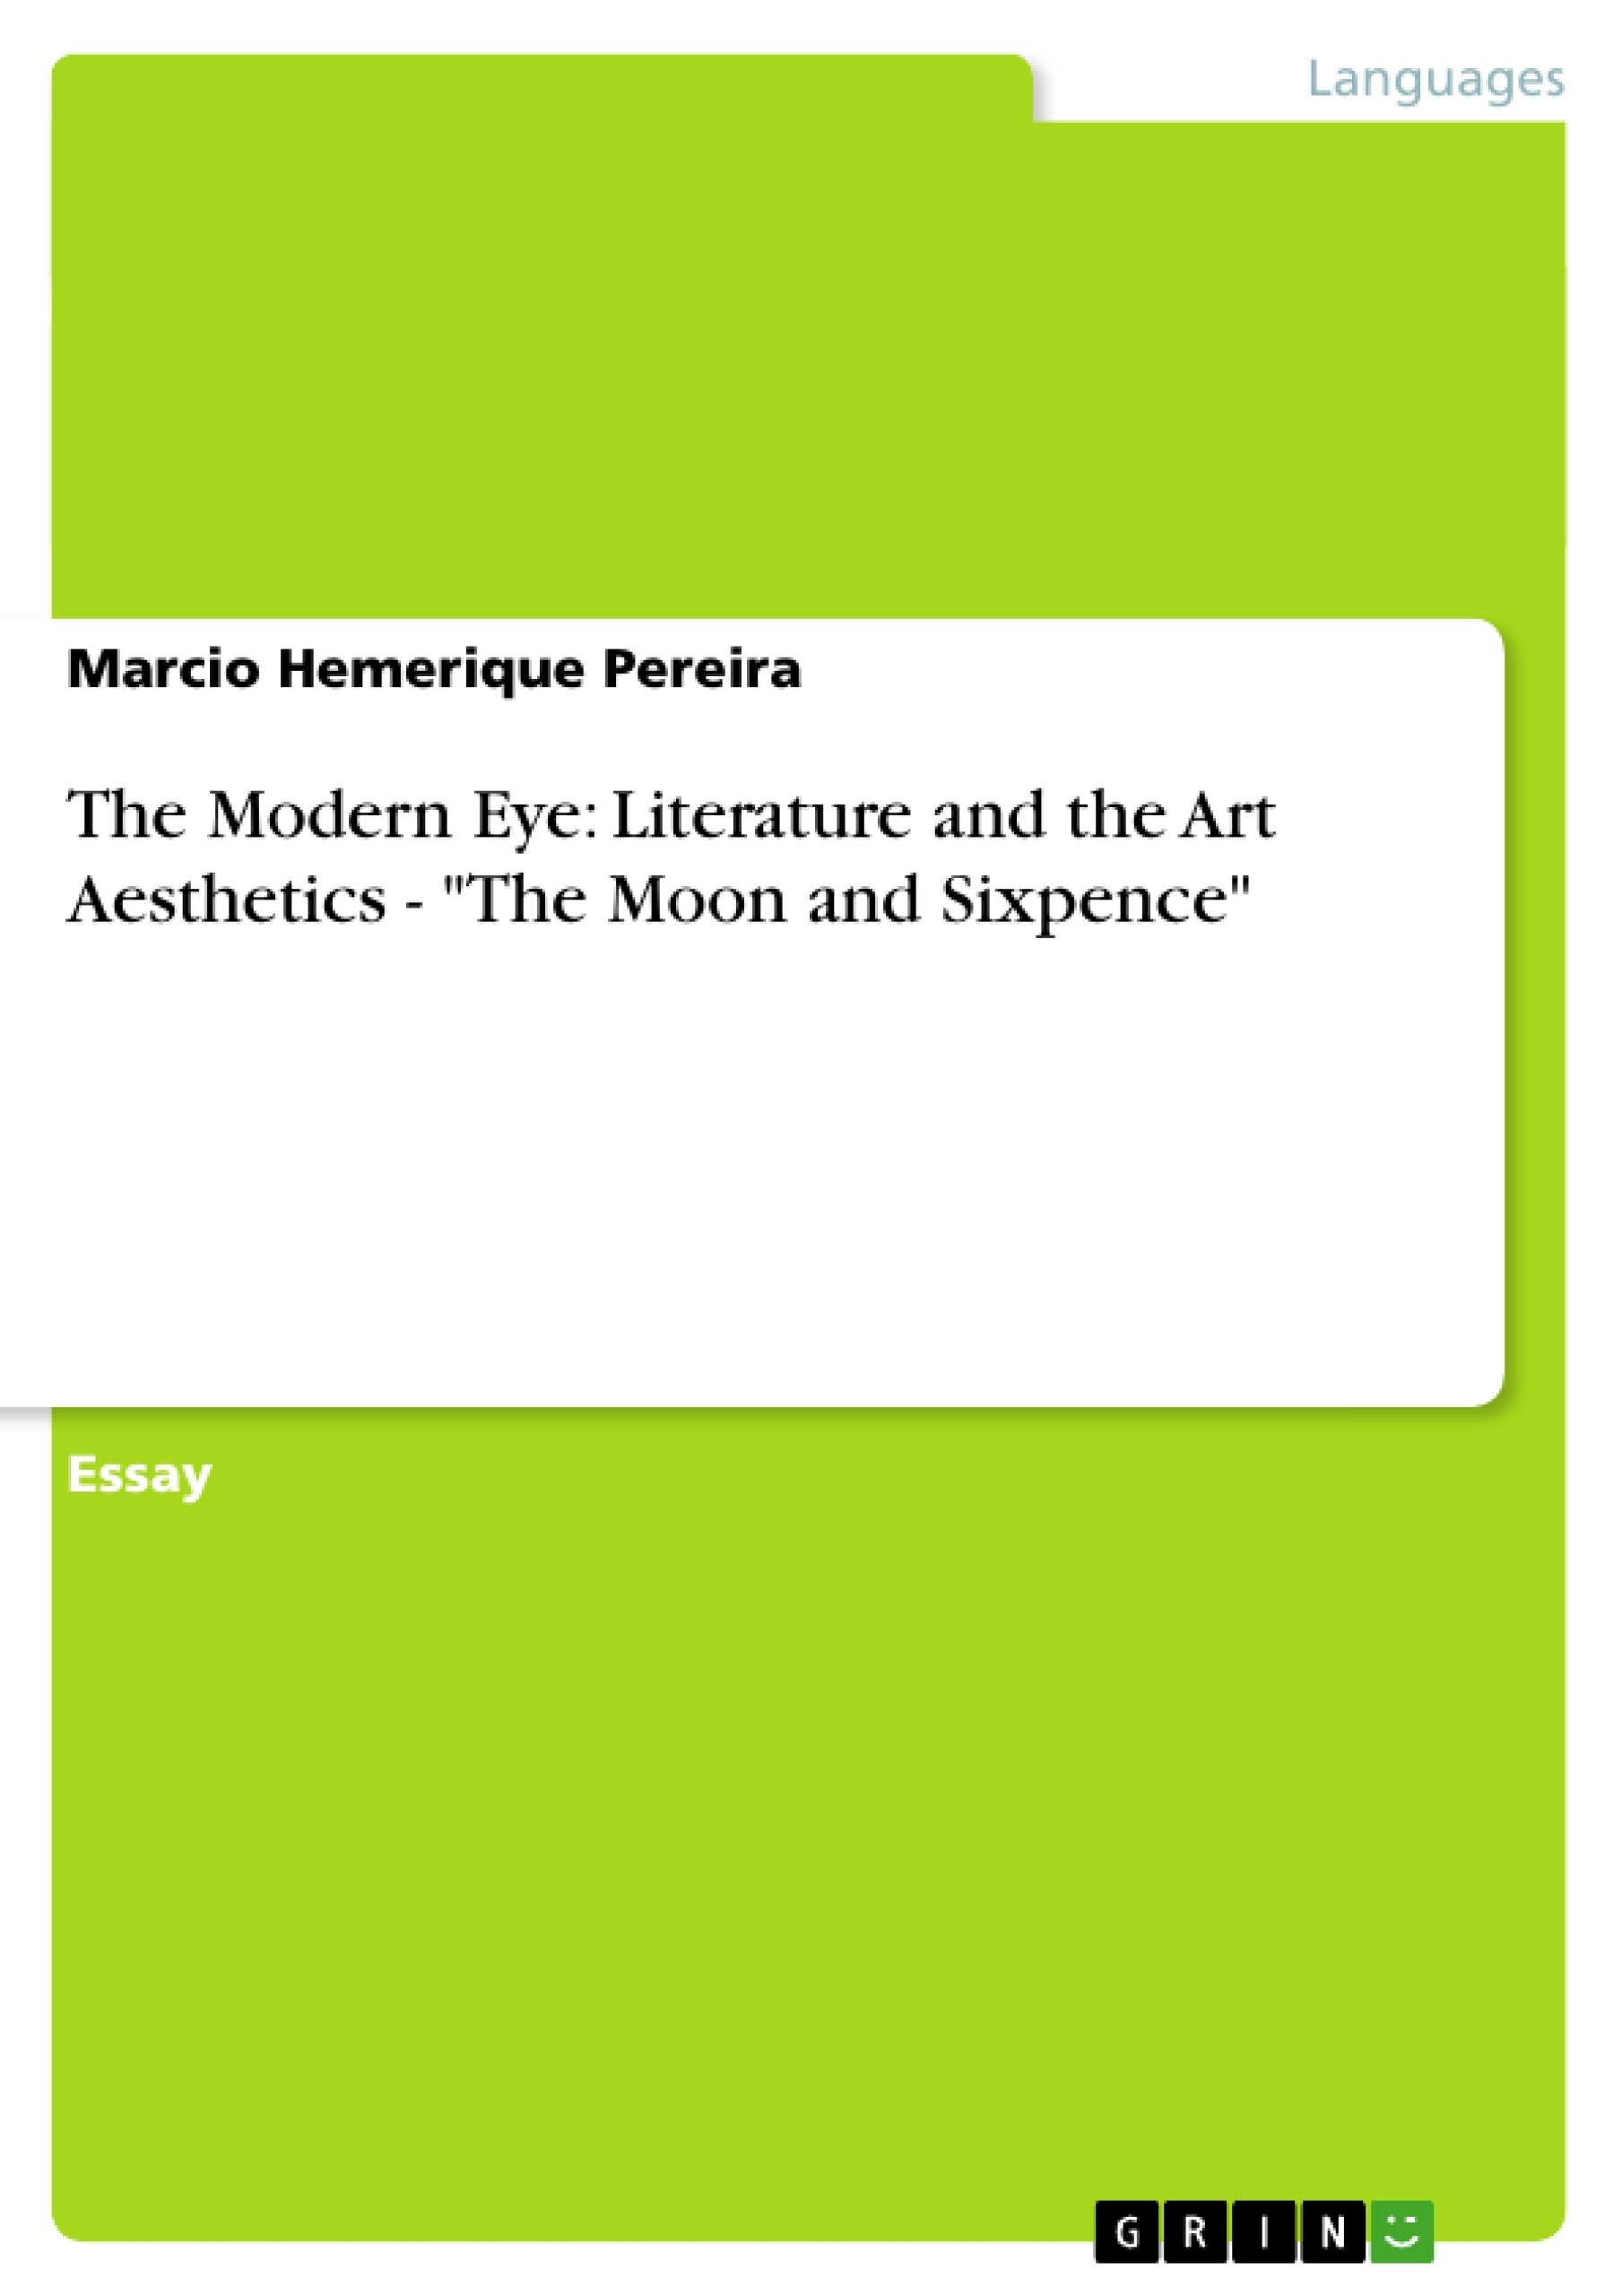 """Title: The Modern Eye: Literature and the Art Aesthetics - """"The Moon and Sixpence"""""""